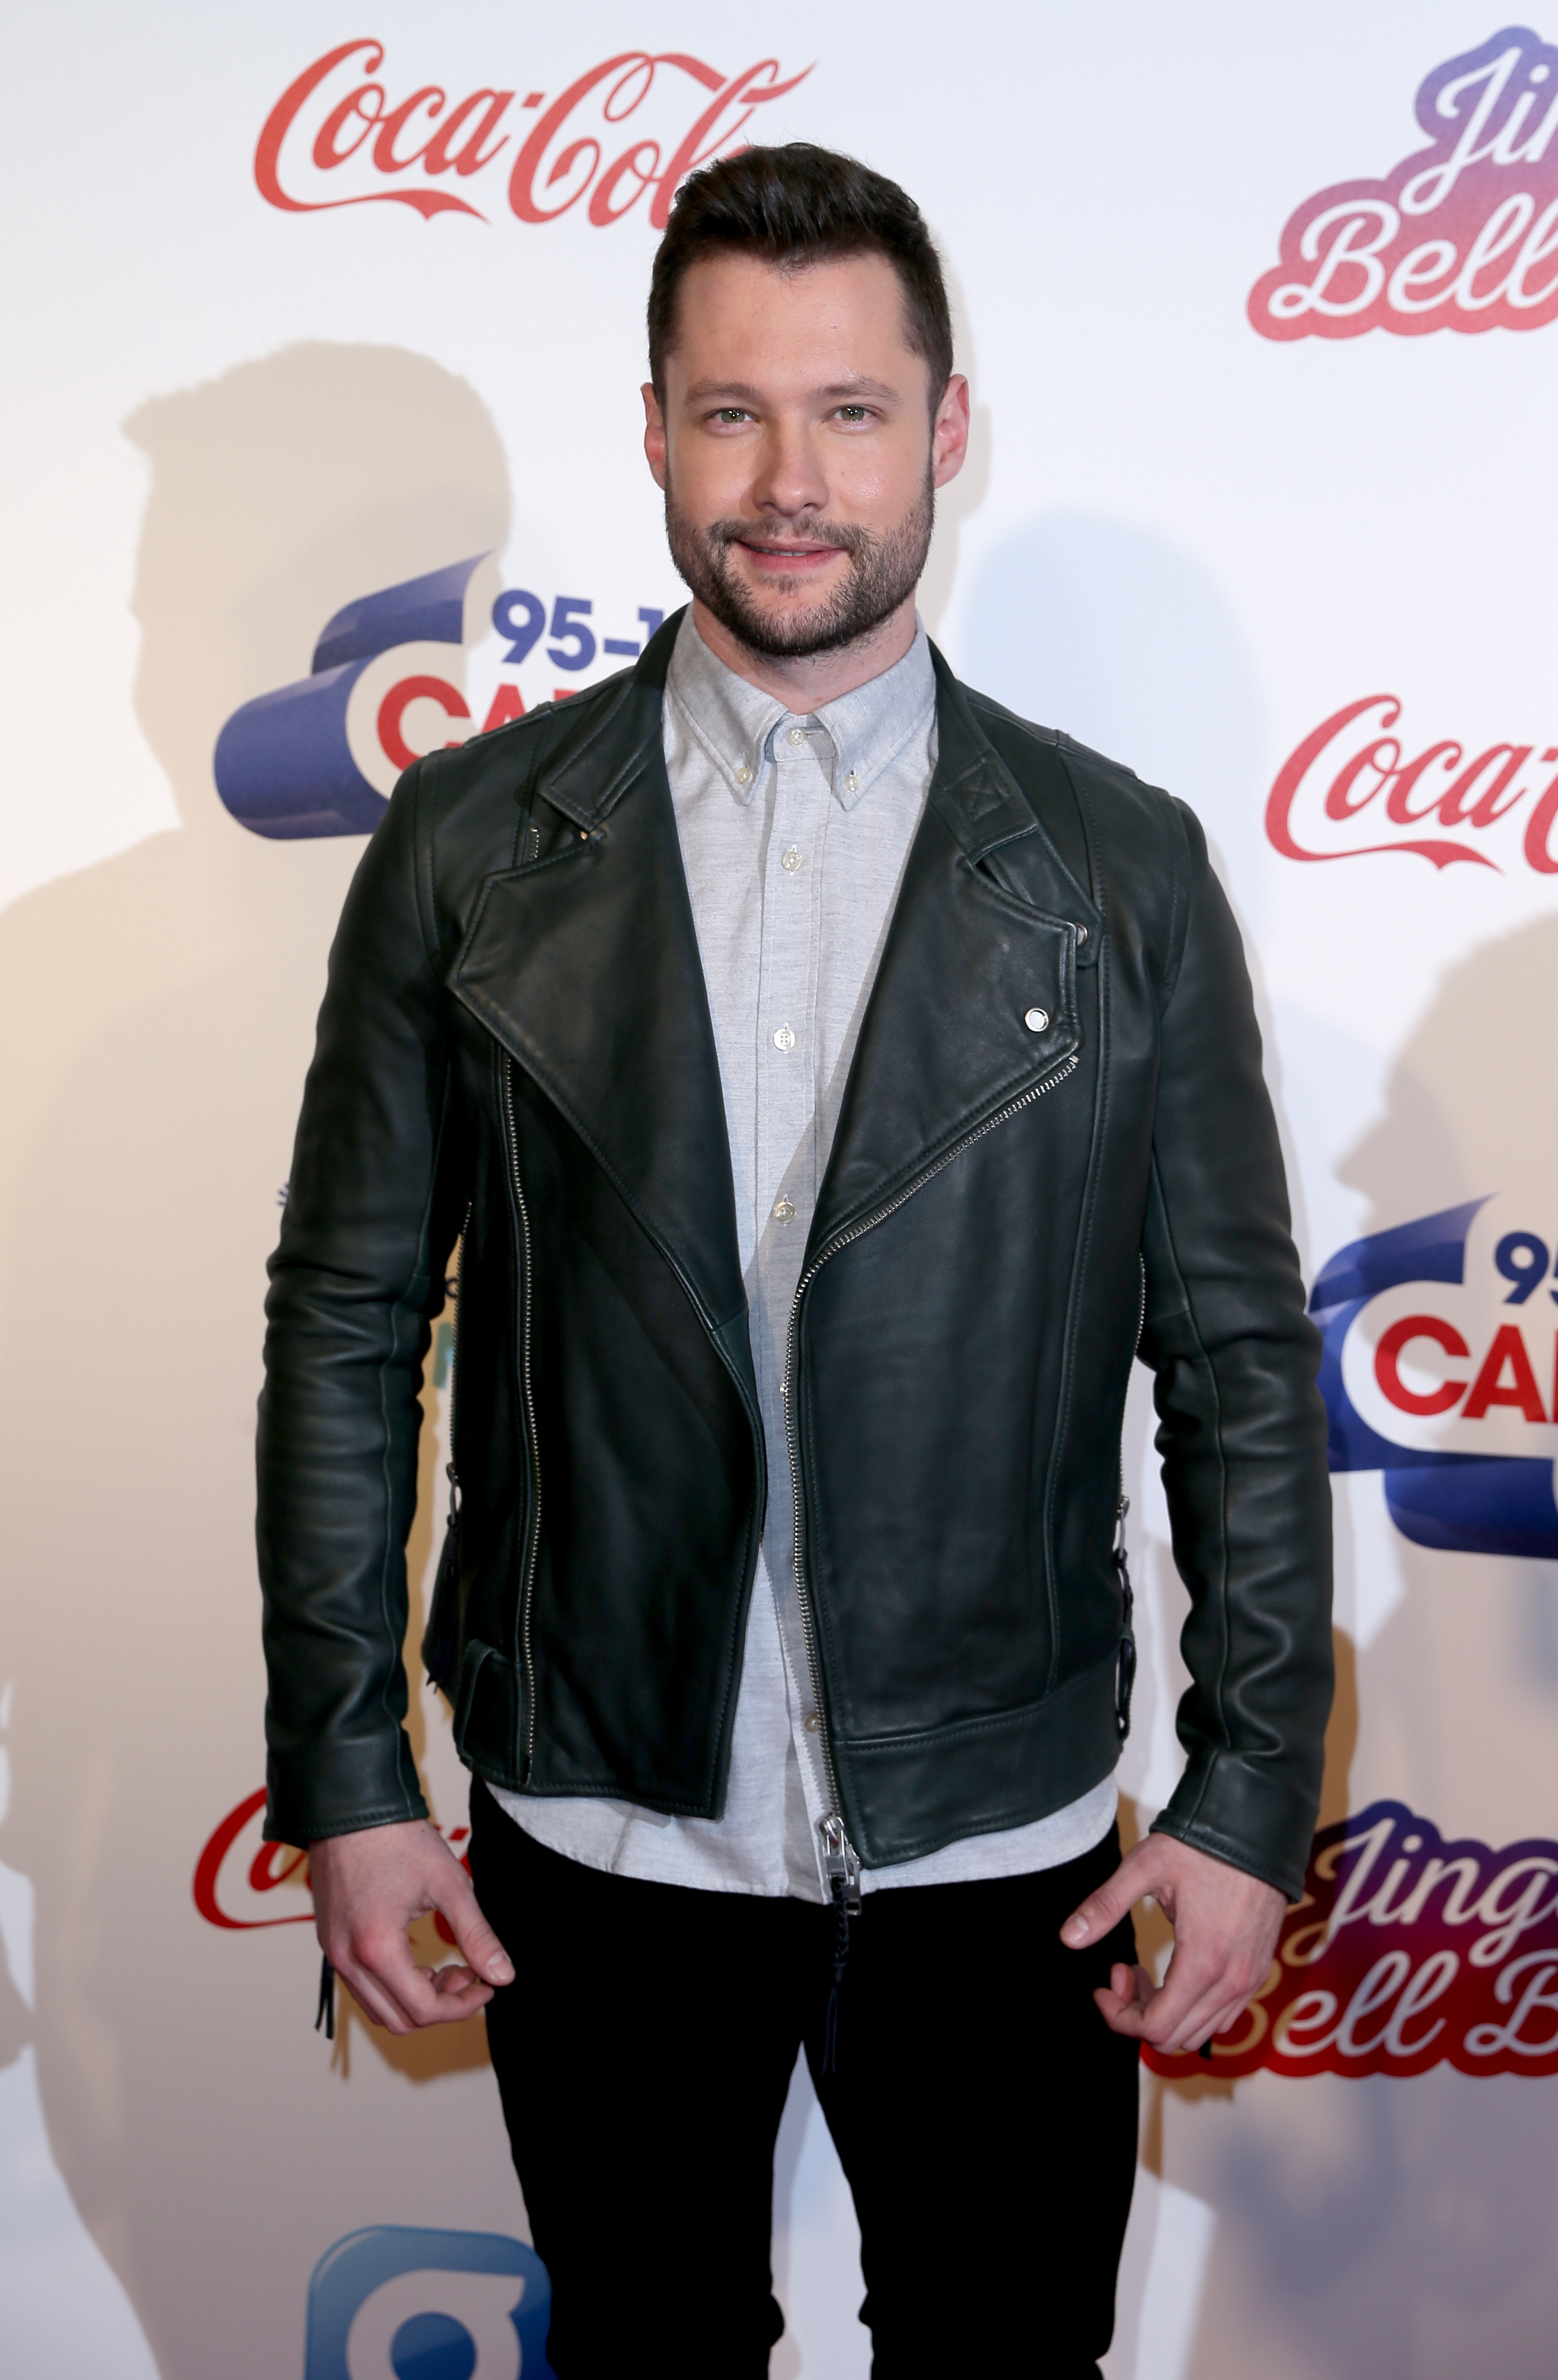 Calum Scott Jingle Bell Ball 2016 Red Carpet